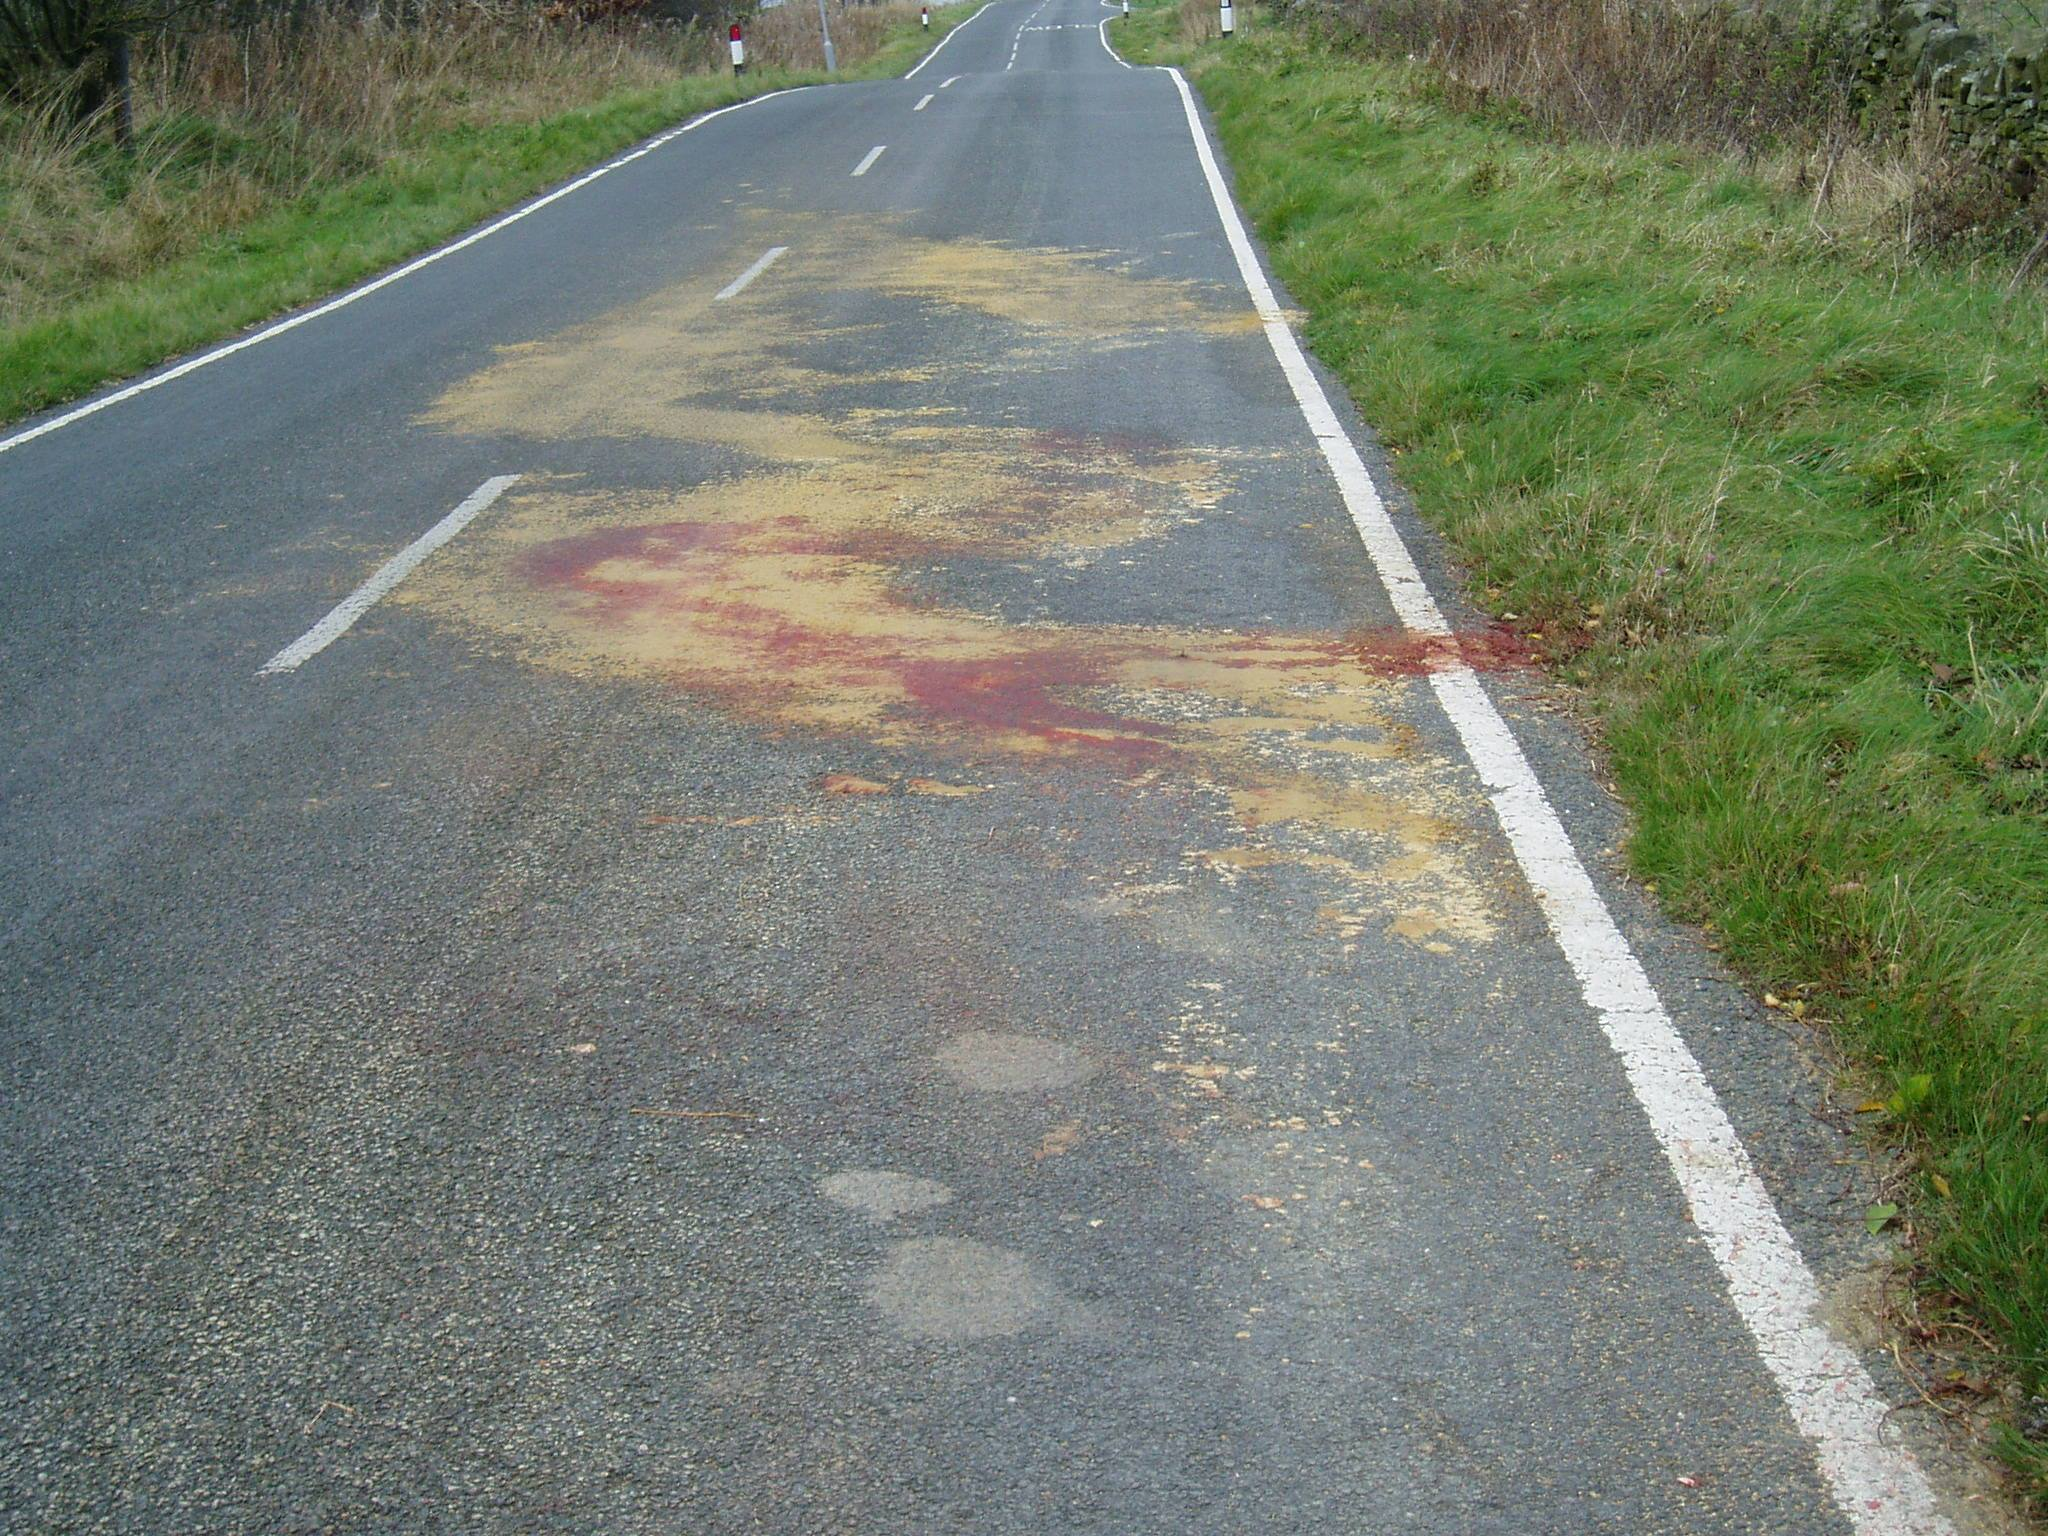 This grim image is the result of a pony being killed on the road as he jumped out of his field and was hit by a car. This happened because he was frightened by nearby fireworks. Be safe – look out for your horse and keep him safe. Don't consider hacking out, you can always do that another day. It simply isn't worth the risk!